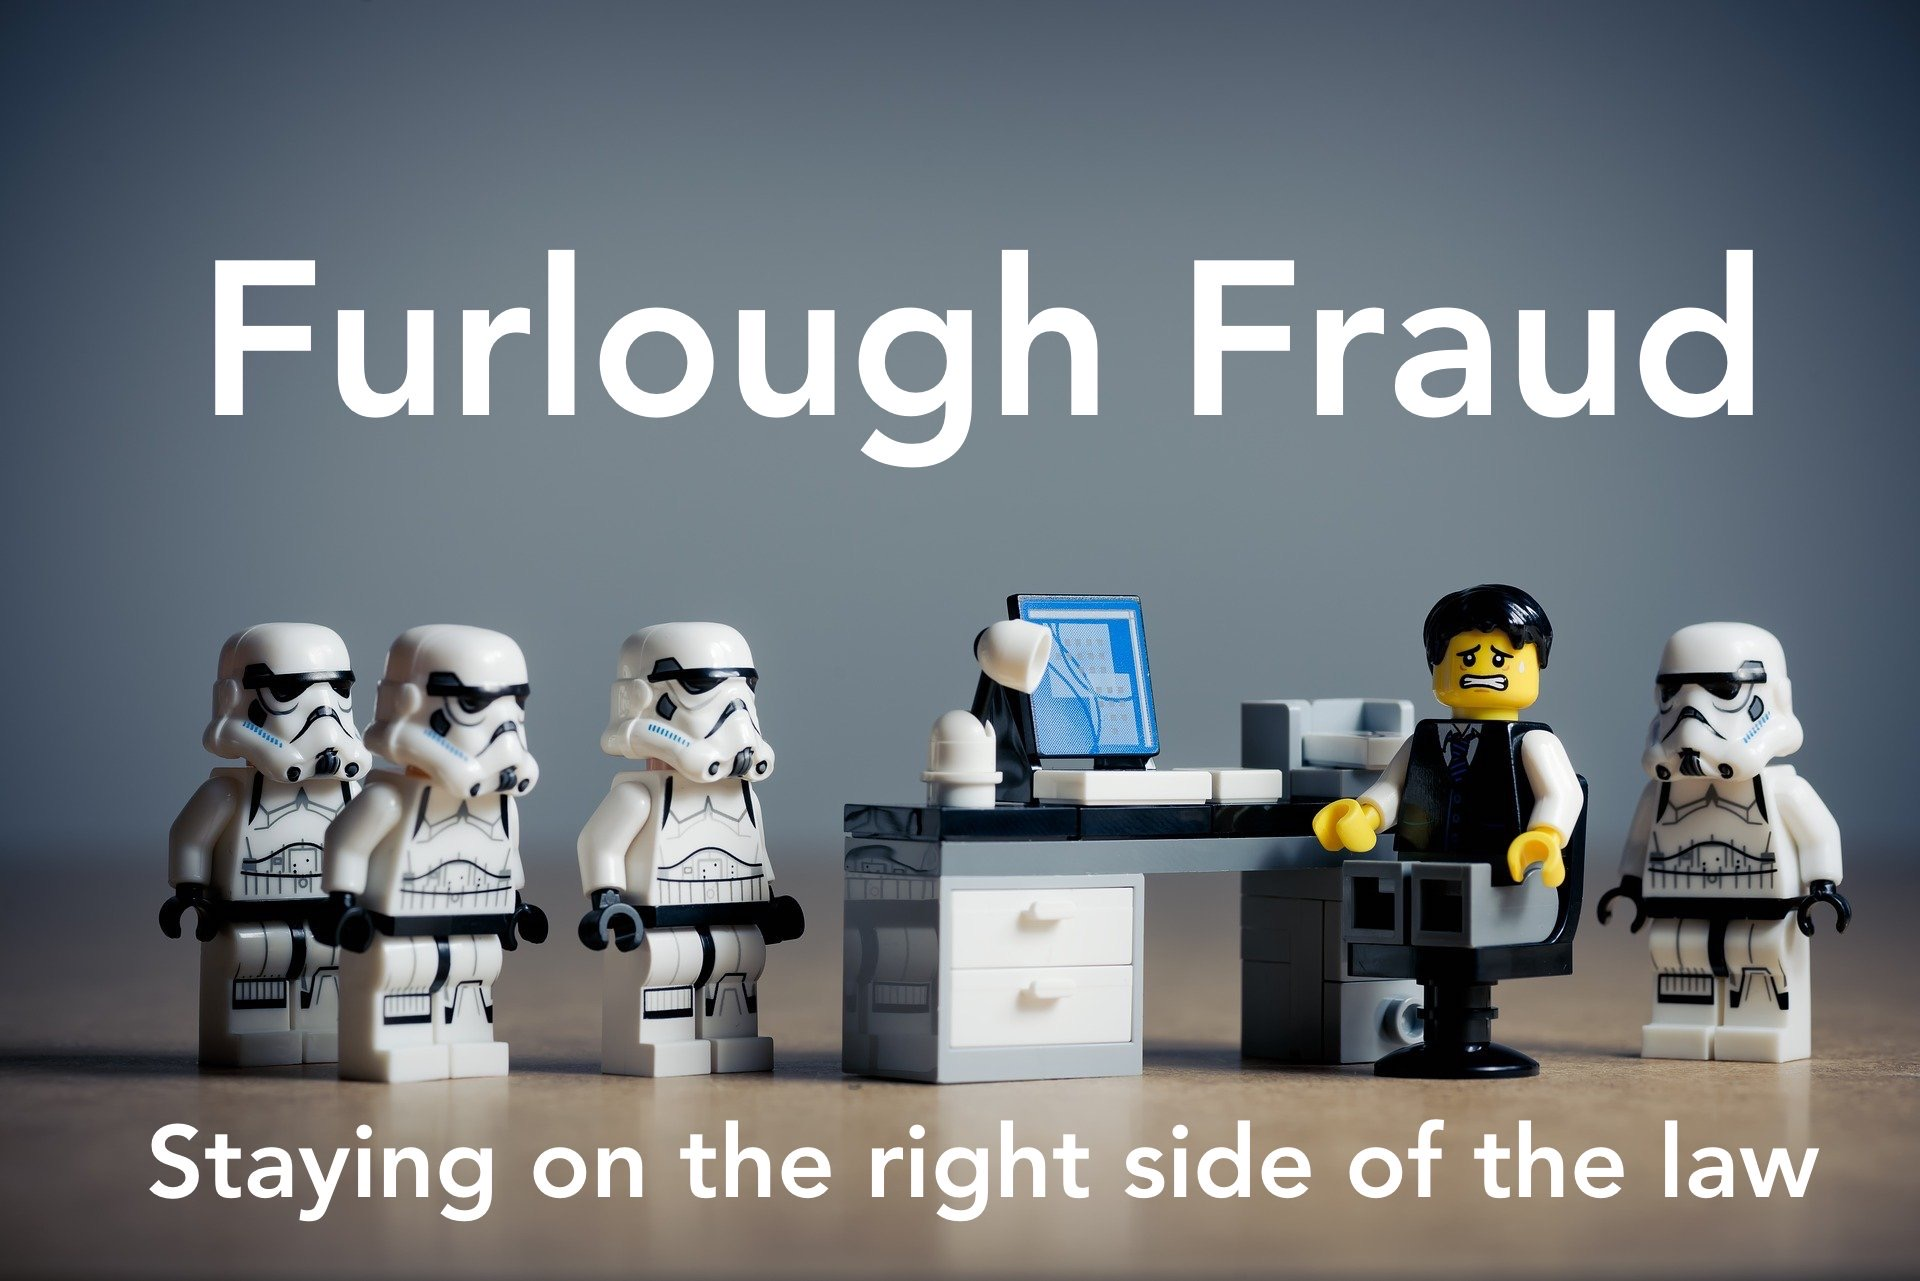 furlough fraud